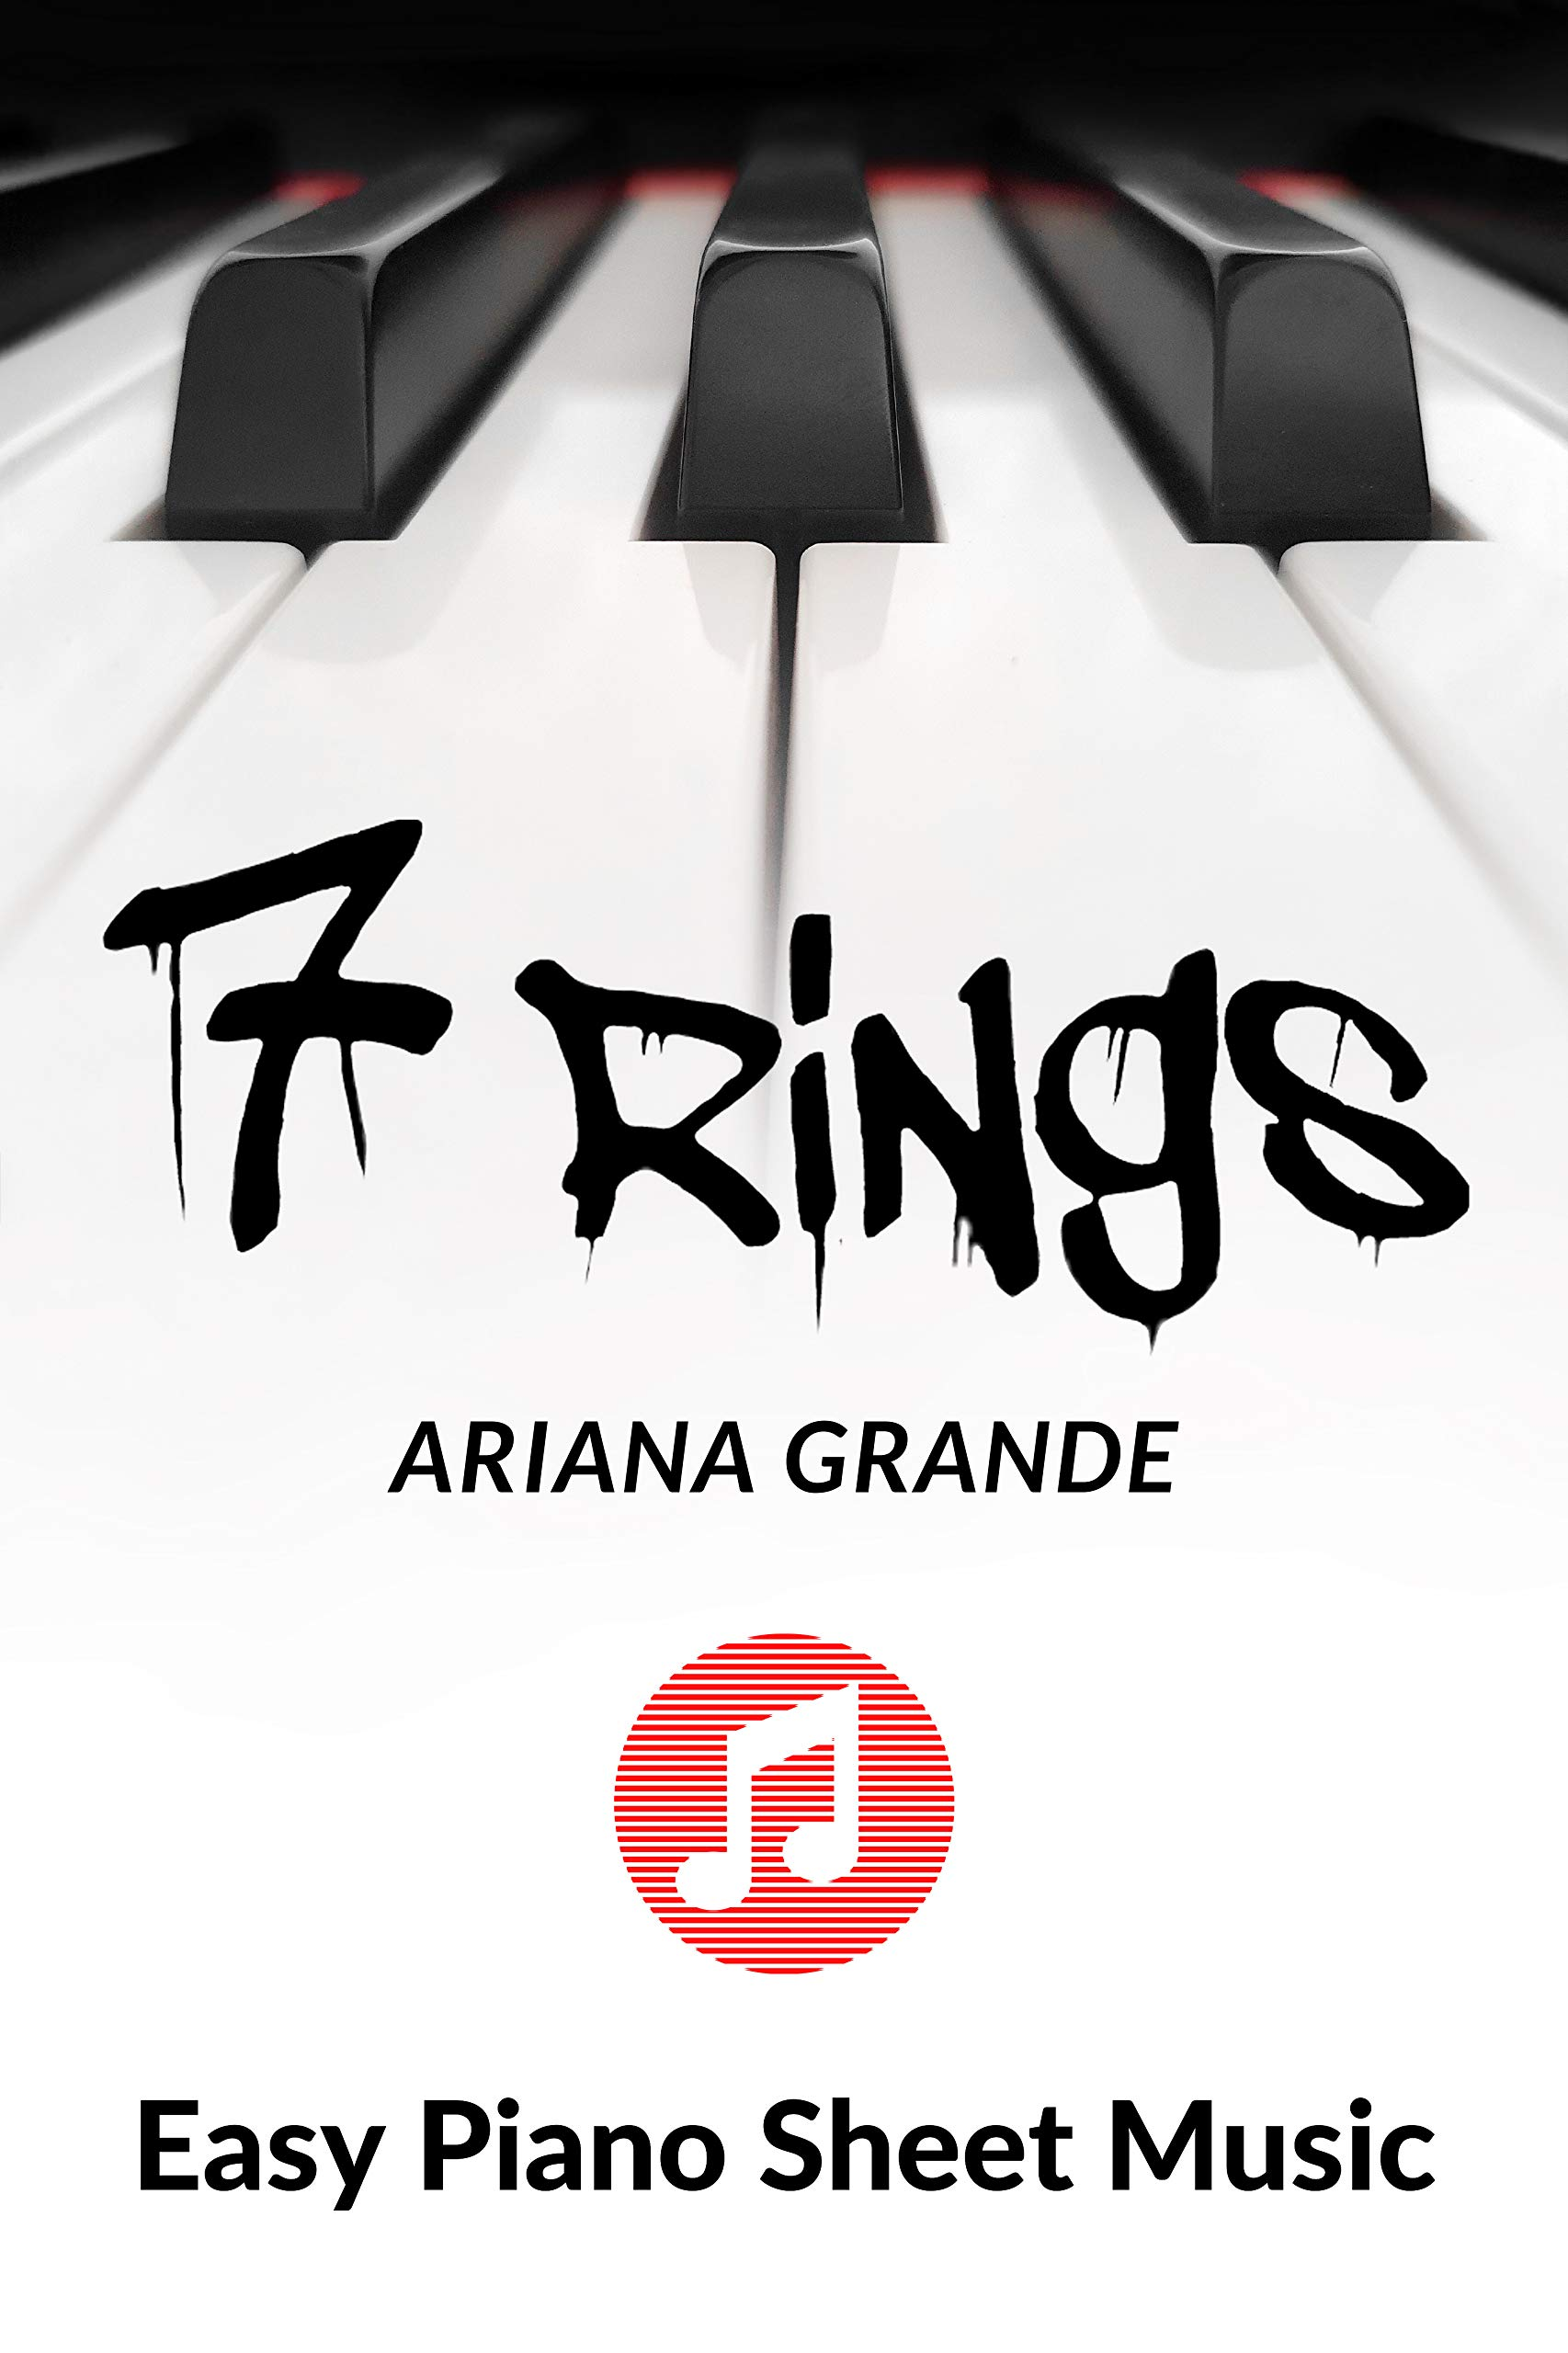 7 Rings - Ariana Grande - Easy Piano Sheet Music - Big Note: A fragment of the song, in a very simple piano arrangement for kids, young musicians, students, teachers and elderly people.